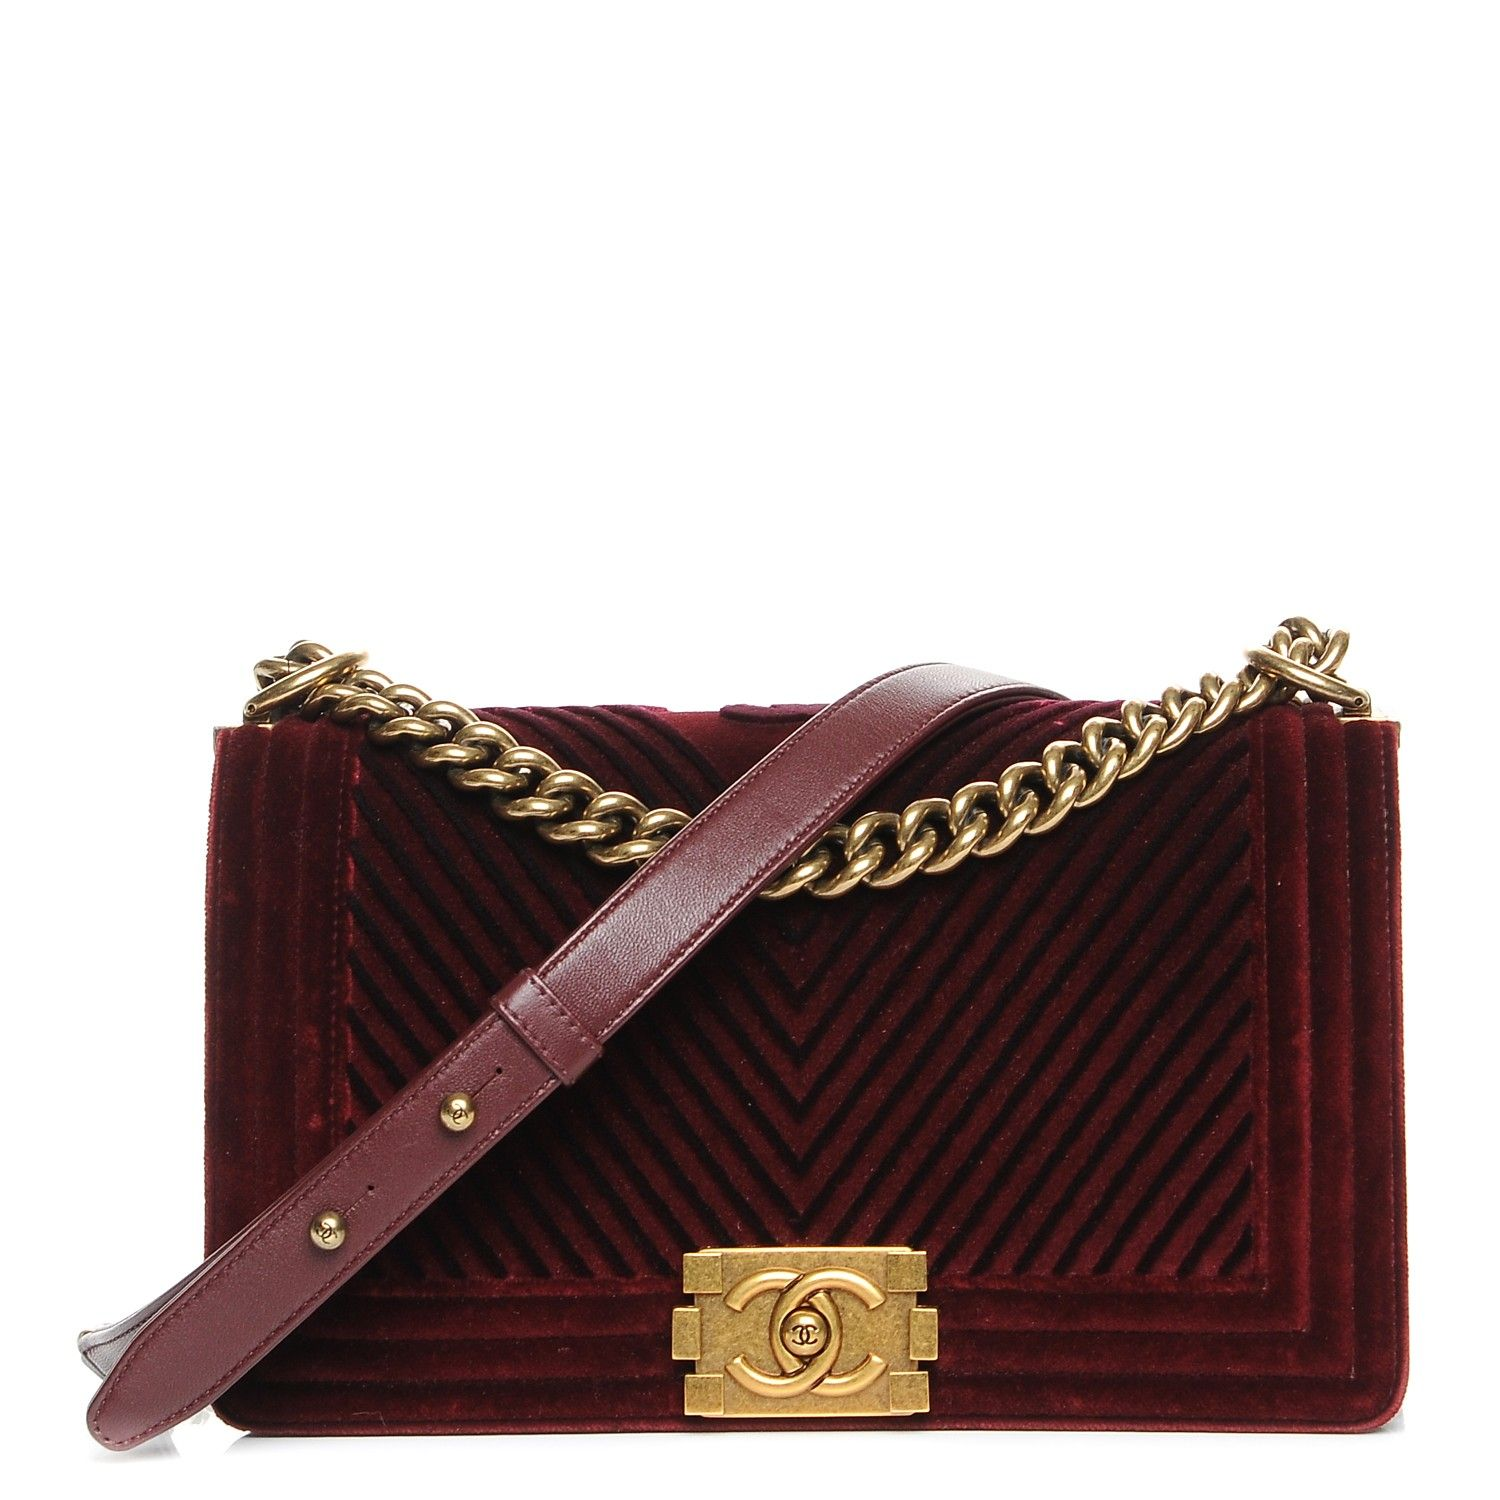 ad0f9c9408ea This is an authentic CHANEL Velvet Chevron Medium Boy Flap in Burgundy.  This Paris Metiers